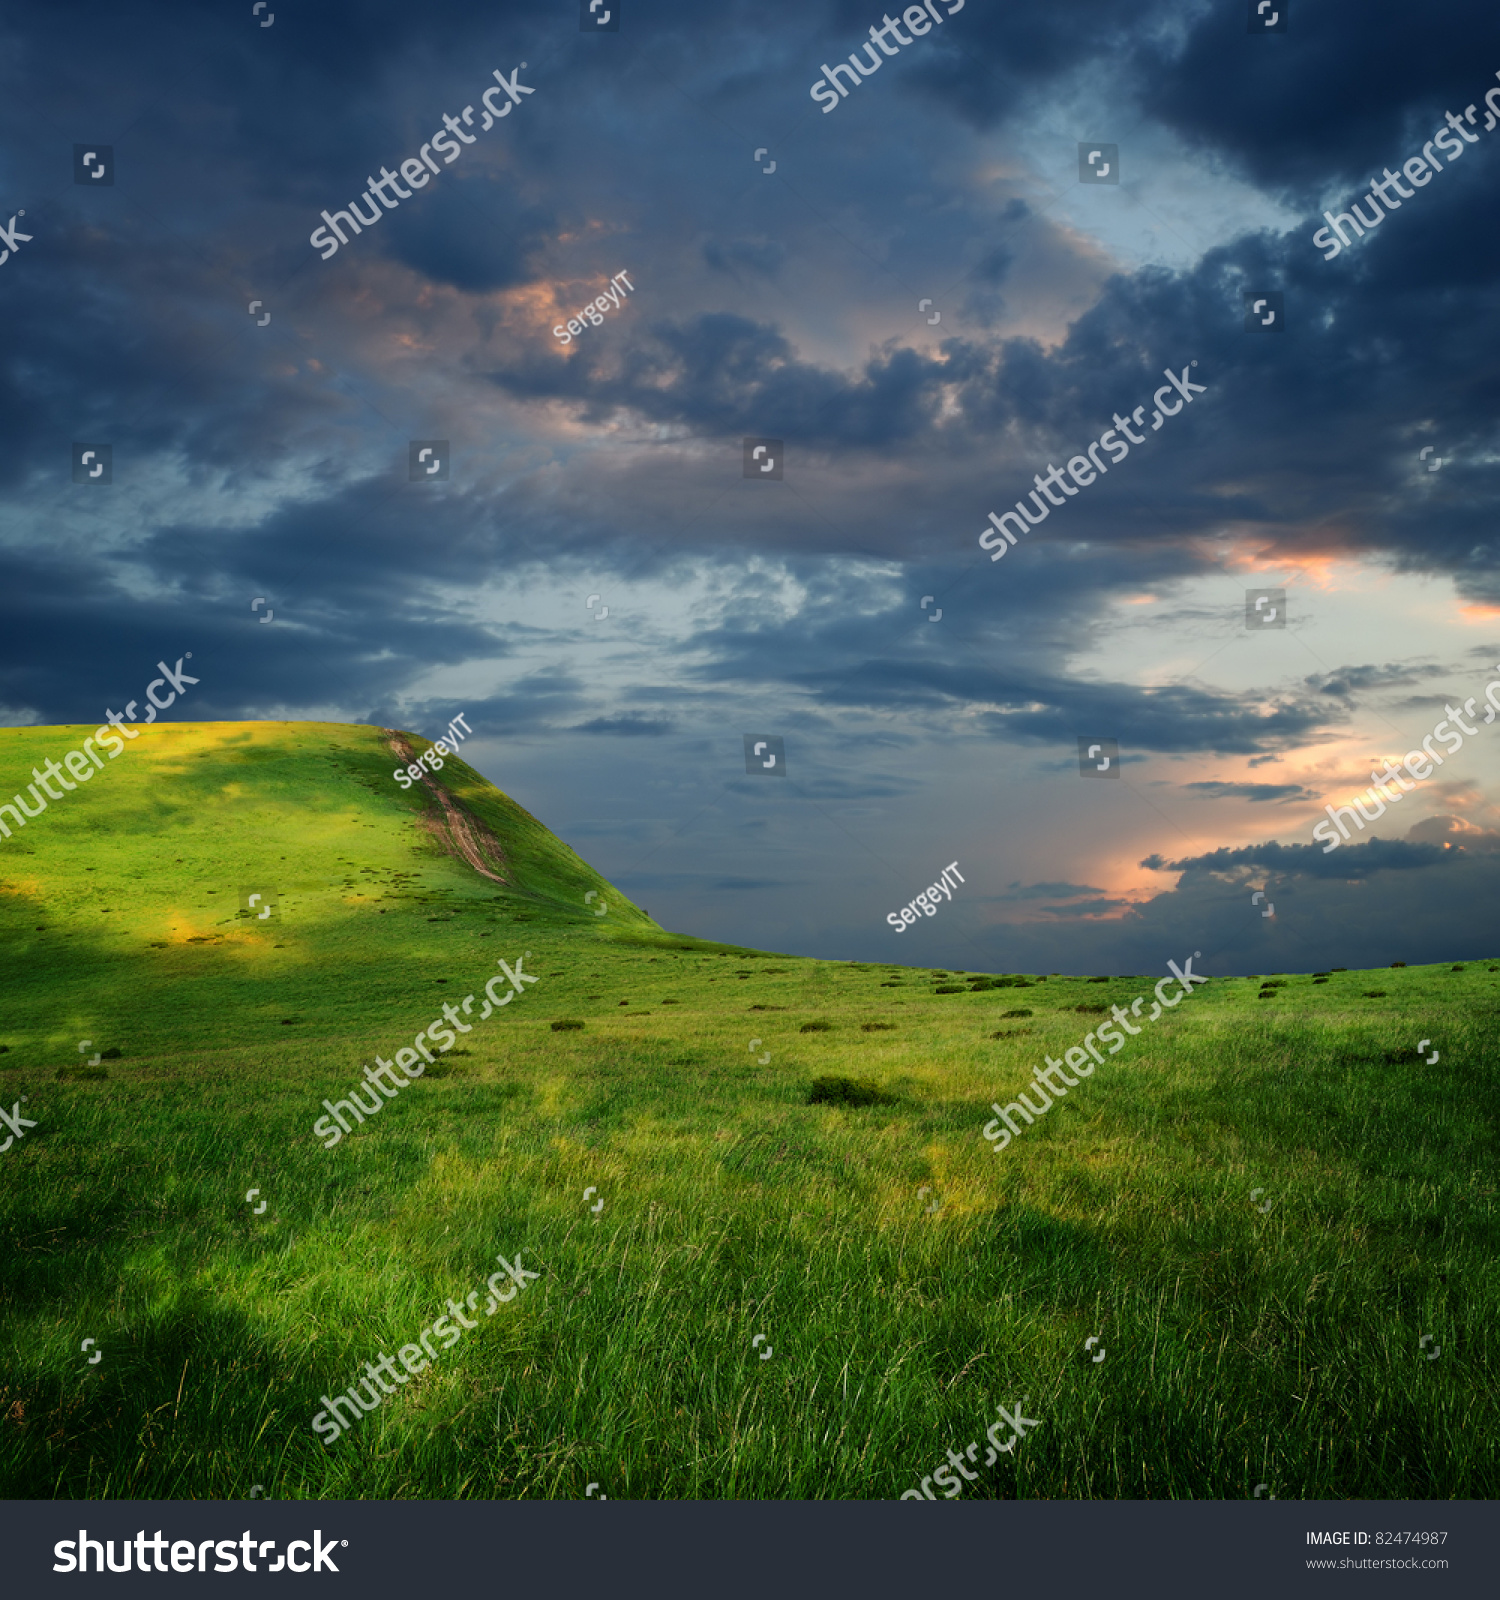 Meadow And Majestic Sky With Clouds Over The Green Hills Stock Photo 82474987 : Shutterstock